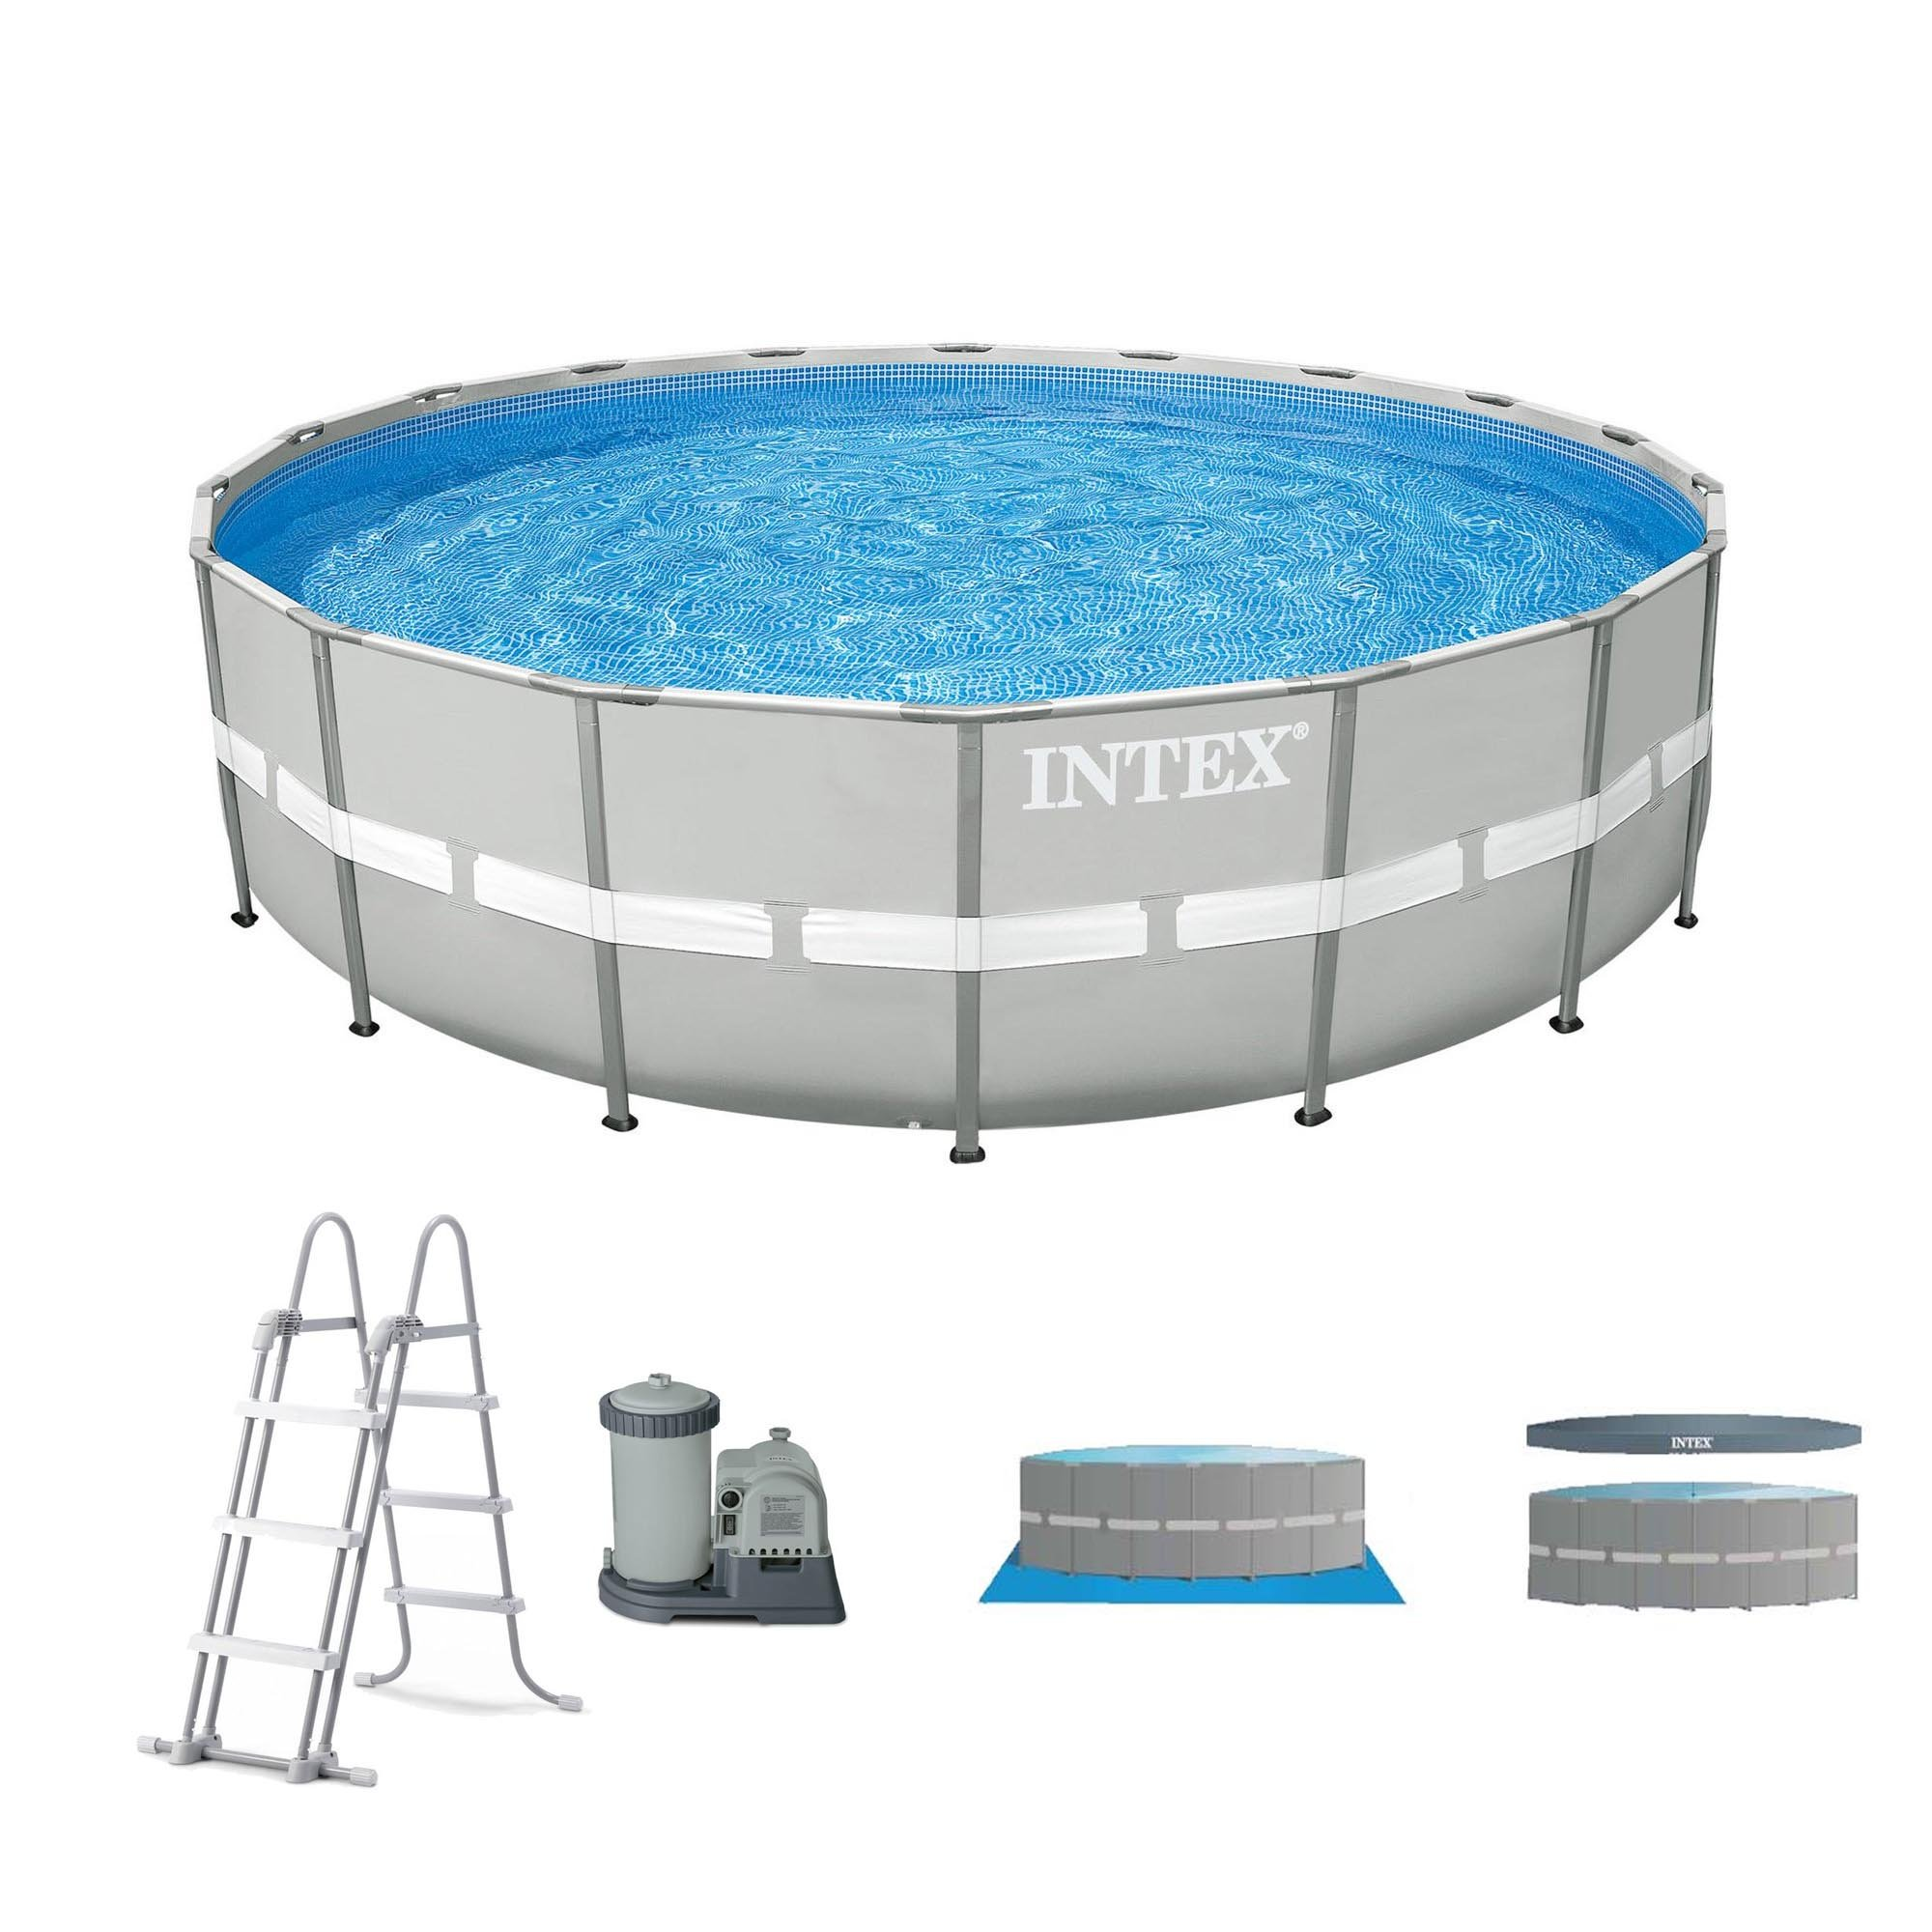 Intex 20 39 x 48 ultra frame above ground swimming pool set w pump and ladder 78257263035 ebay for Swimming pool pumps for above ground pools